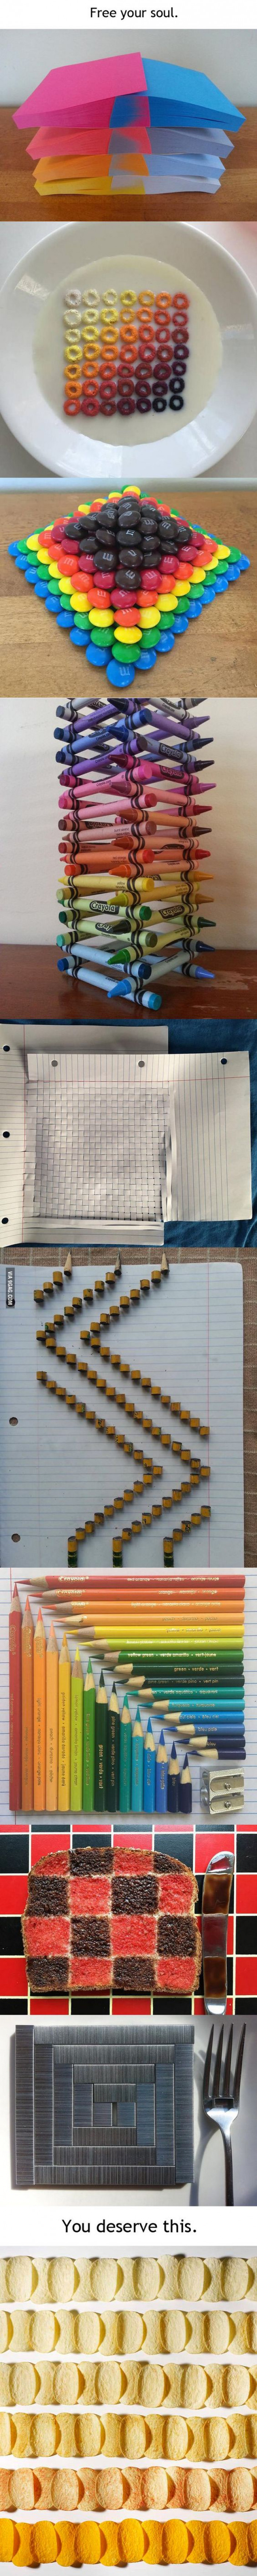 Here's The Cure For Your OCD